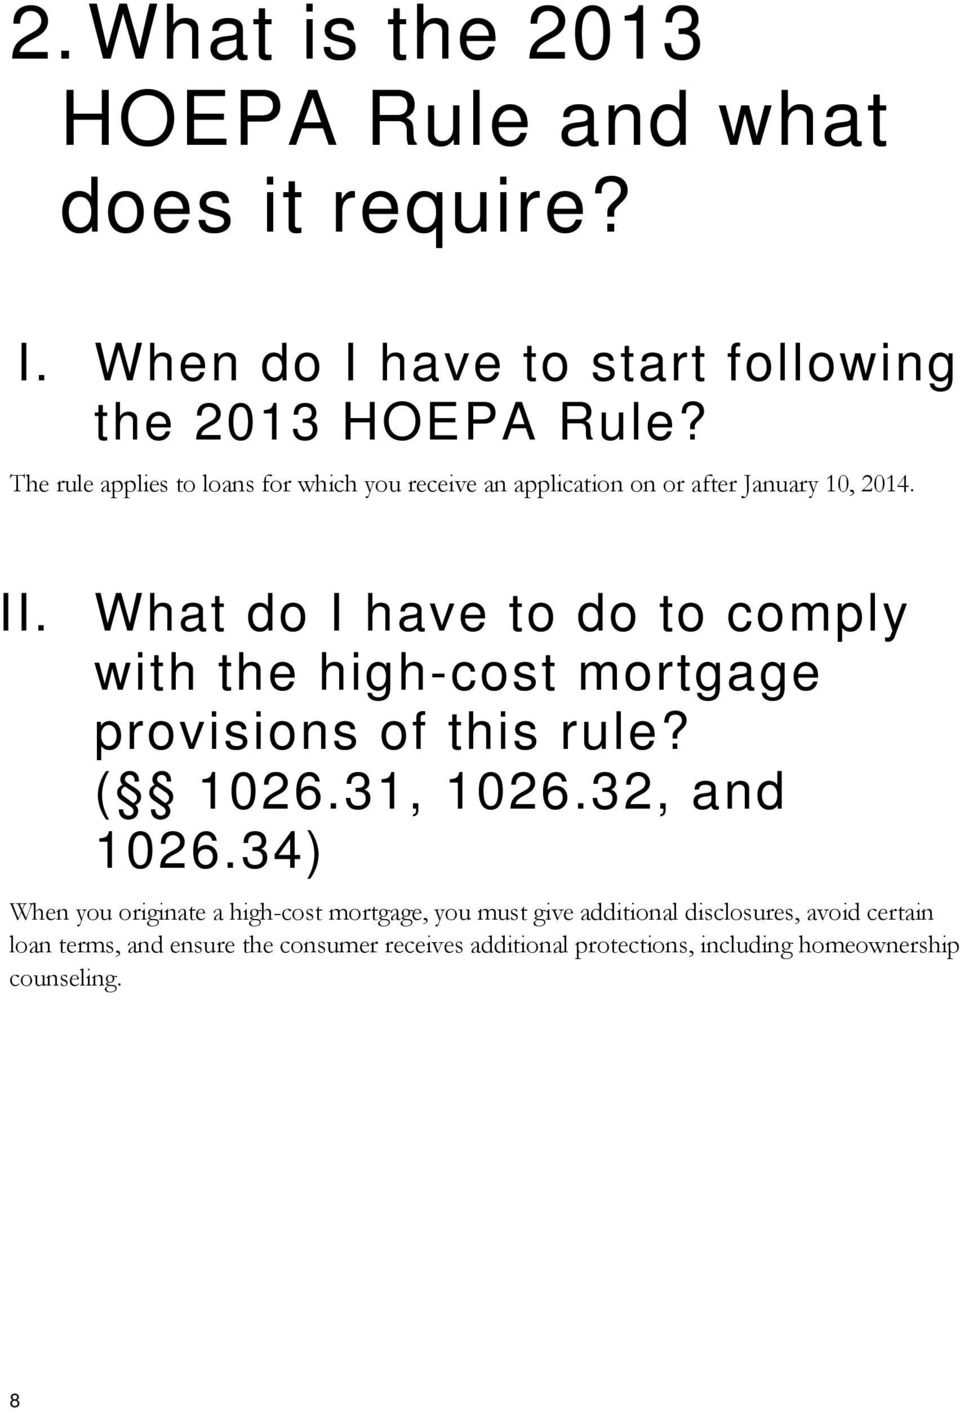 What do I have to do to comply with the high-cost mortgage provisions of this rule? ( 1026.31, 1026.32, and 1026.